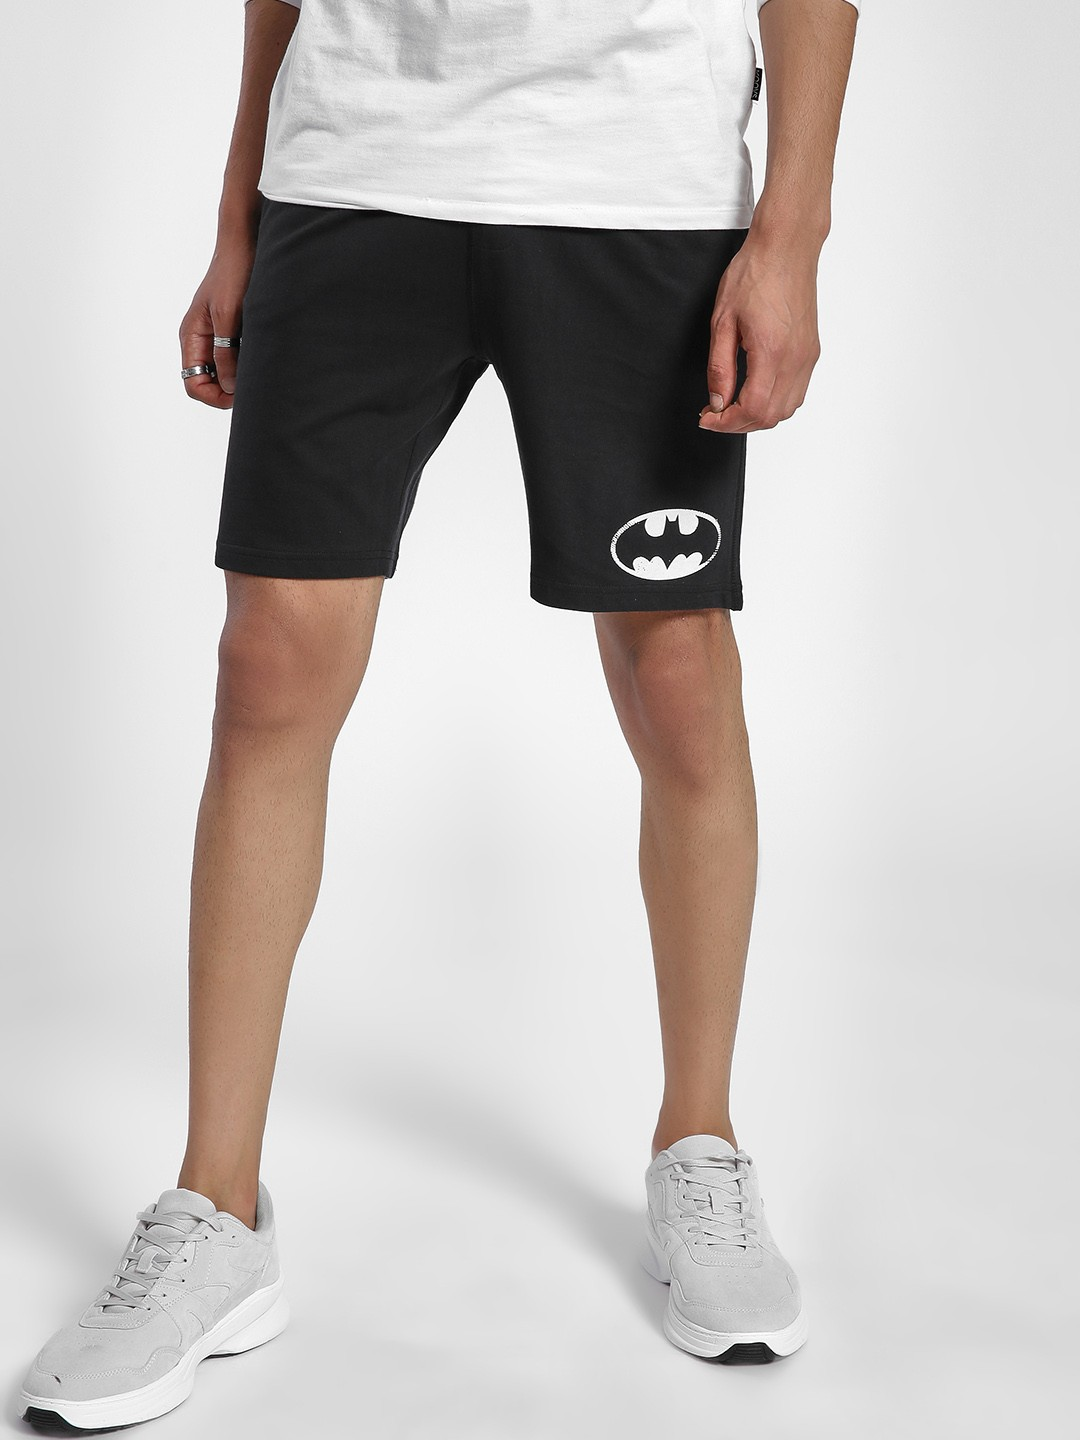 Free Authority Black Batman Logo Print Shorts 1